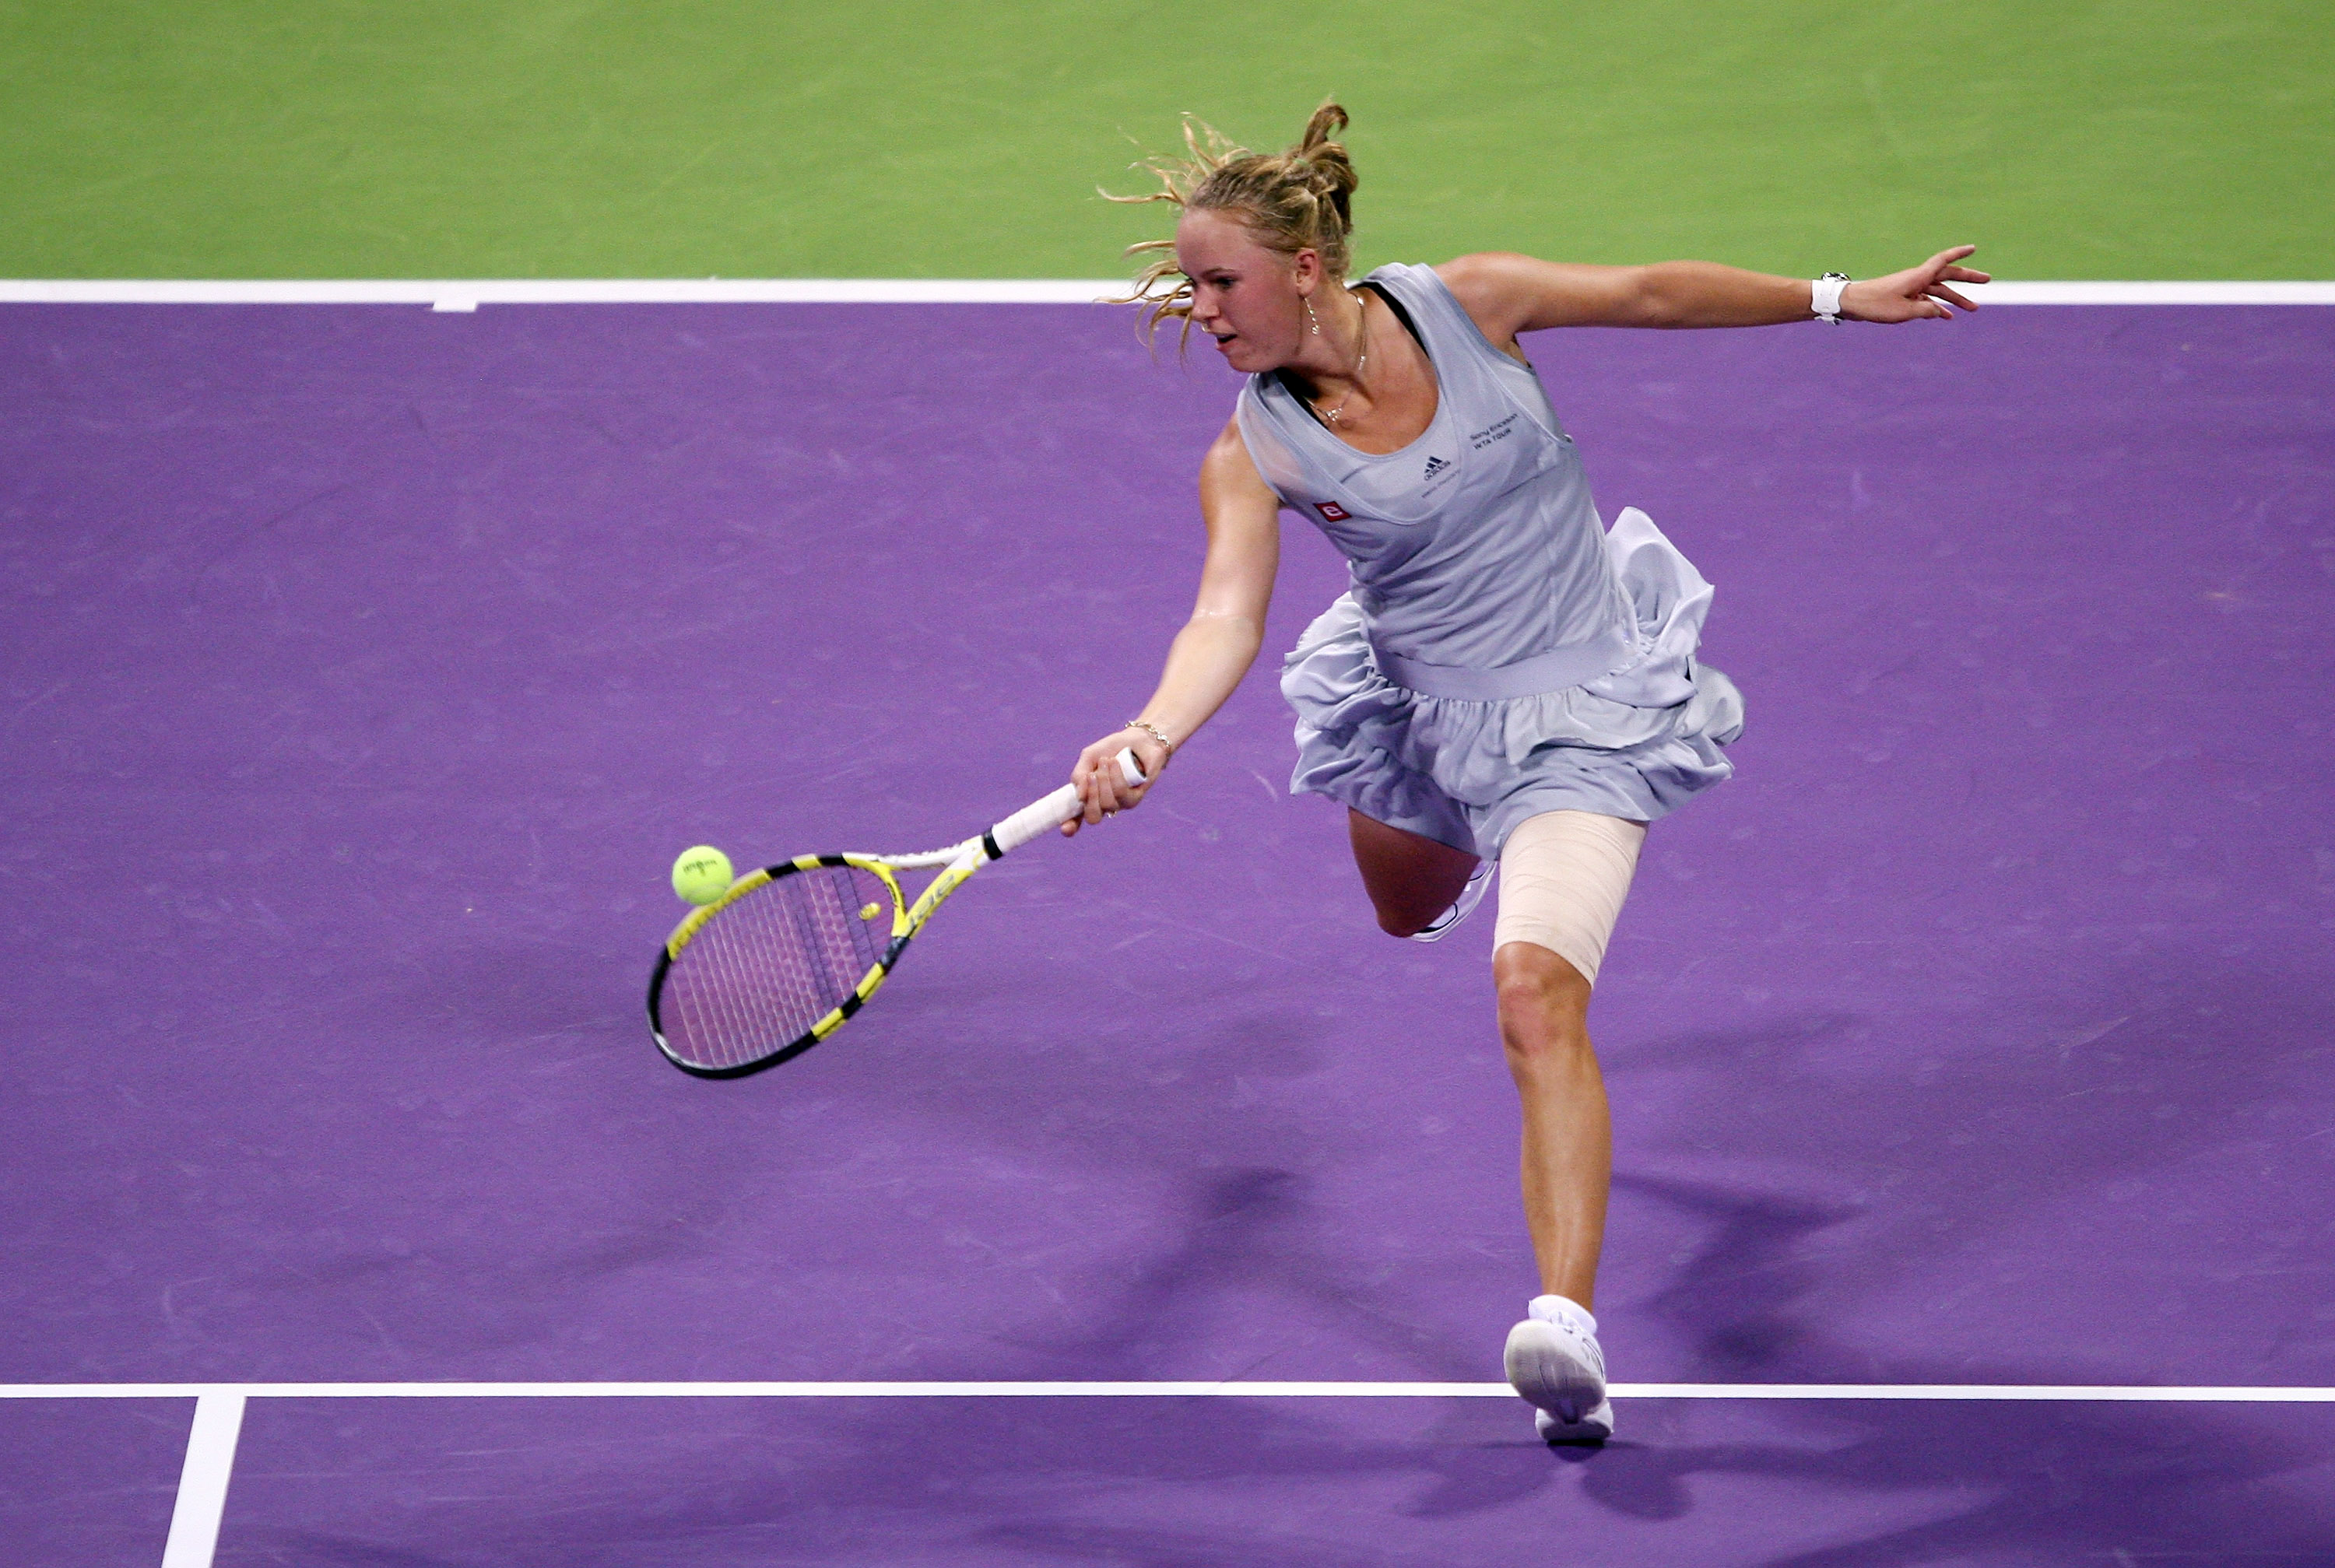 In the same dress but different colorway, Wozniacki qualifies for her first WTA Championships in Doha.